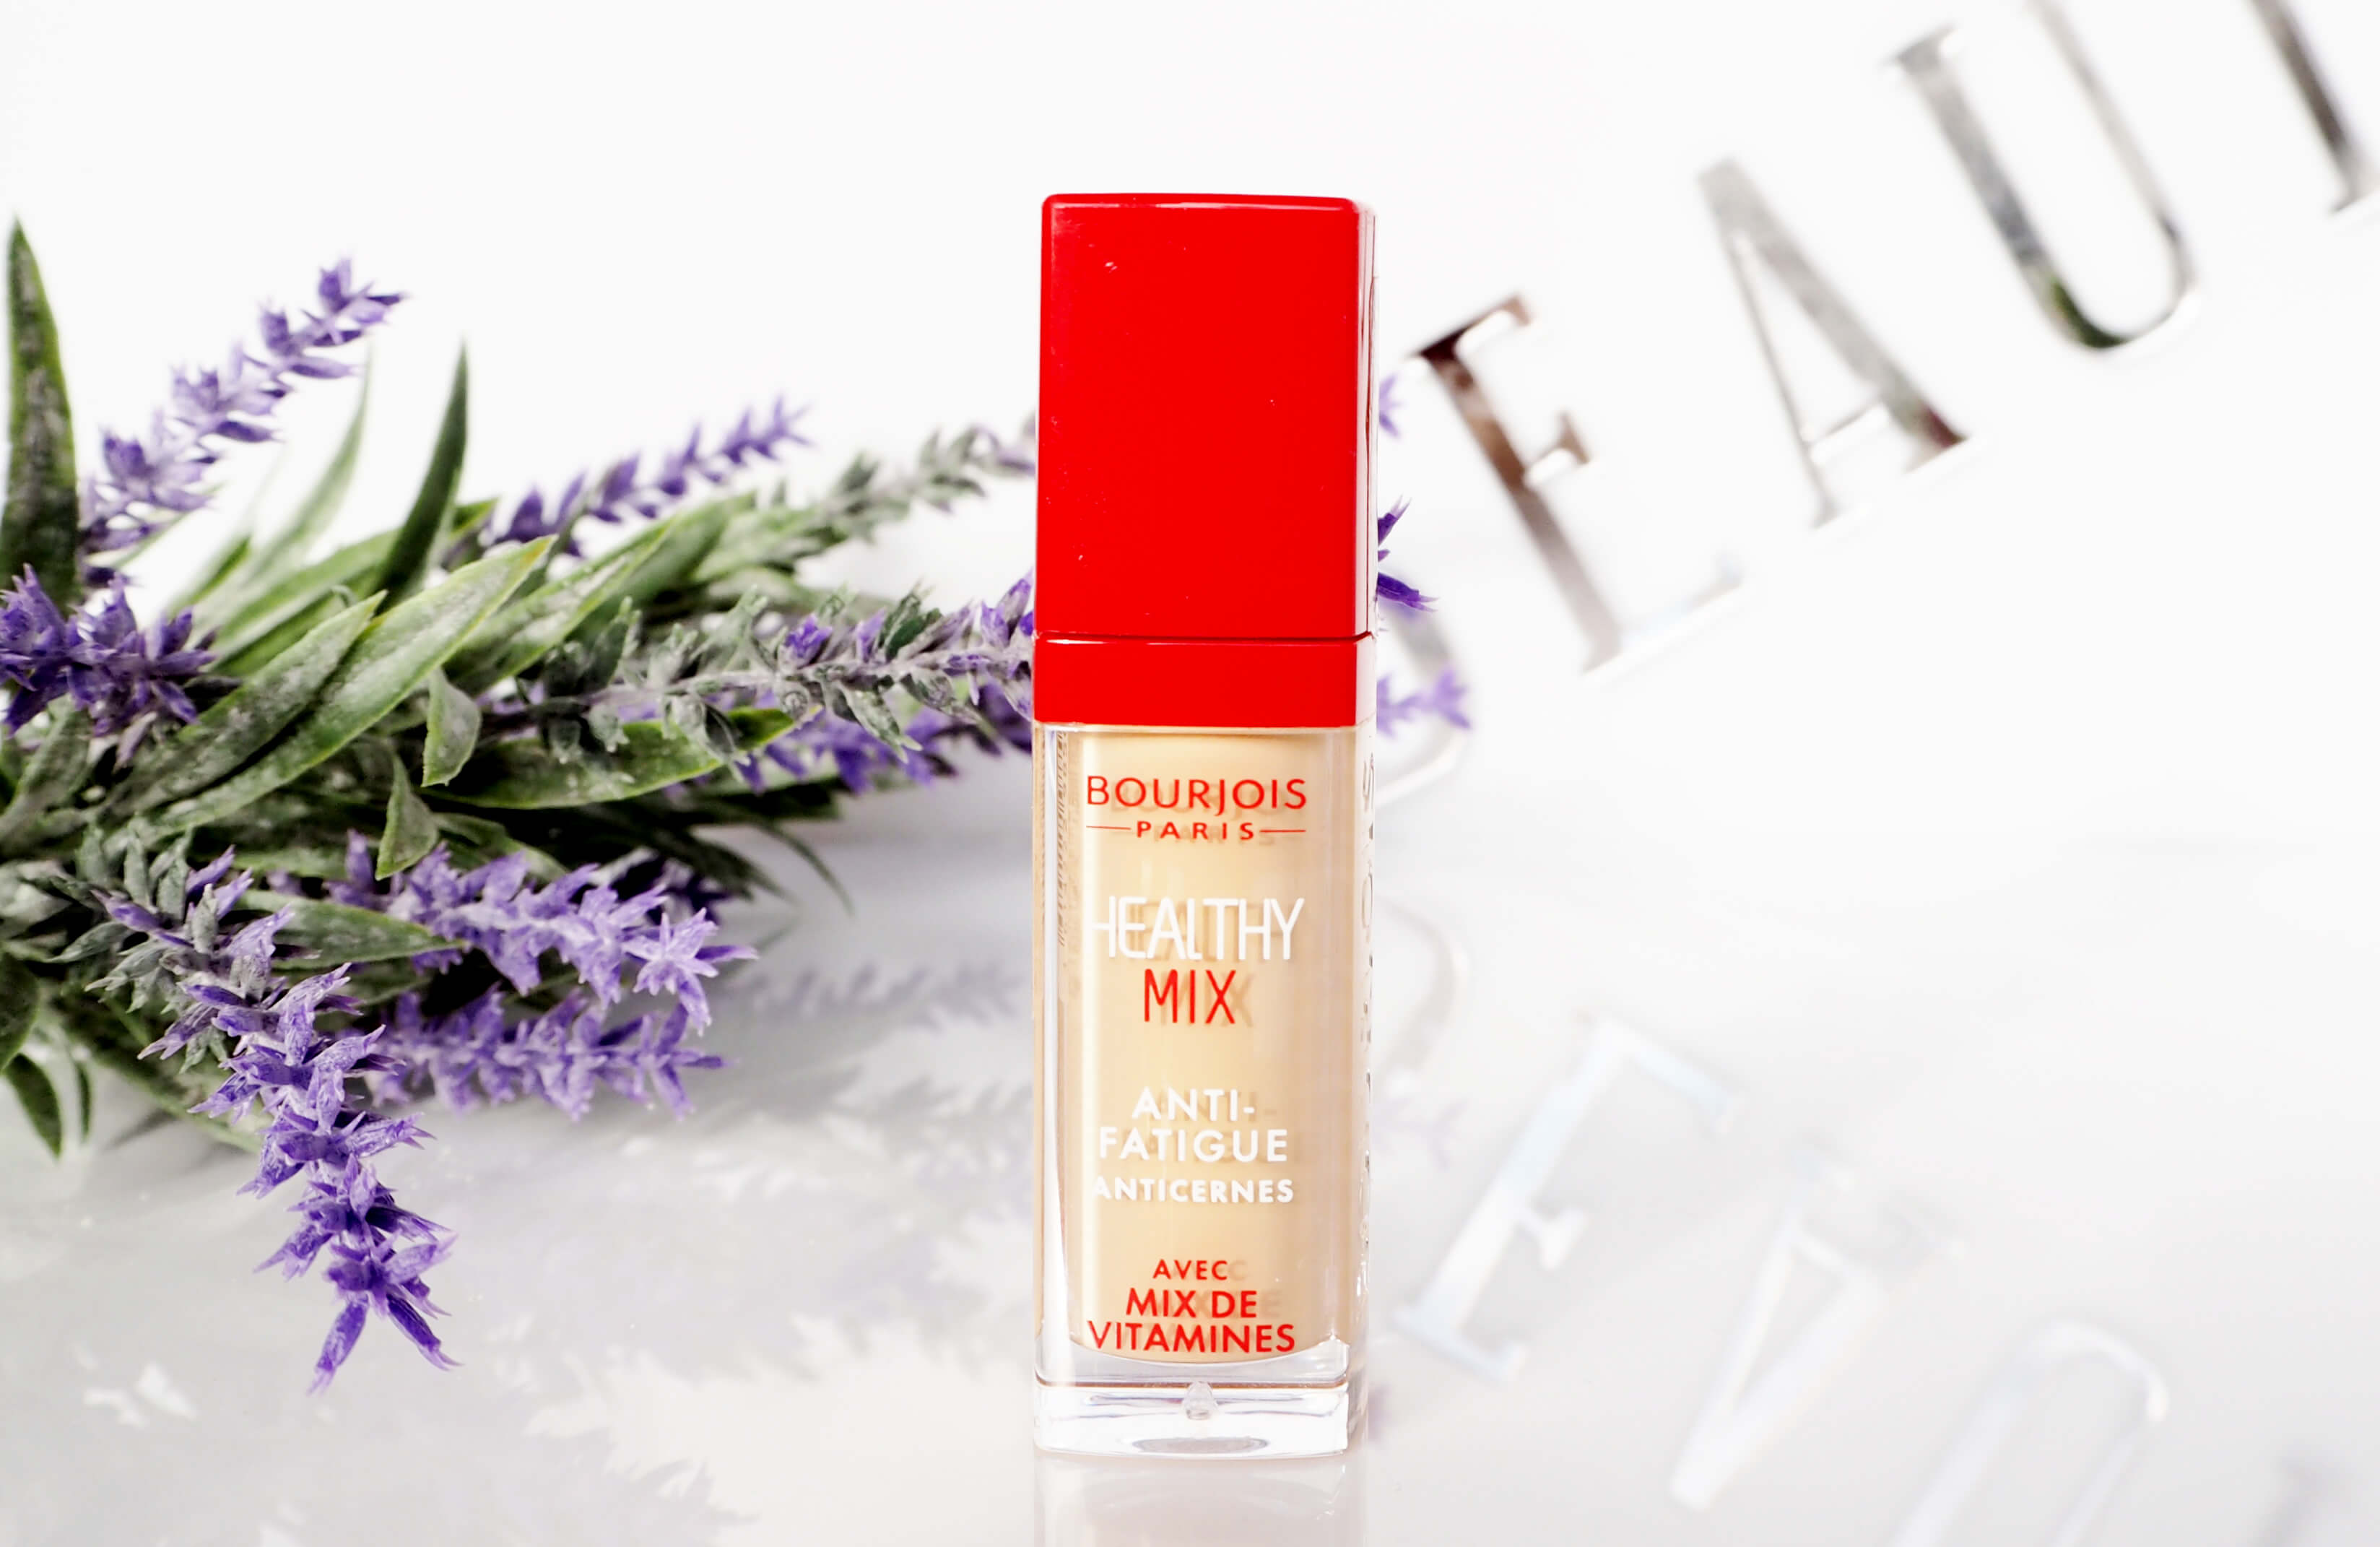 BOURJOIS Healthy Mix korektor pod oczy